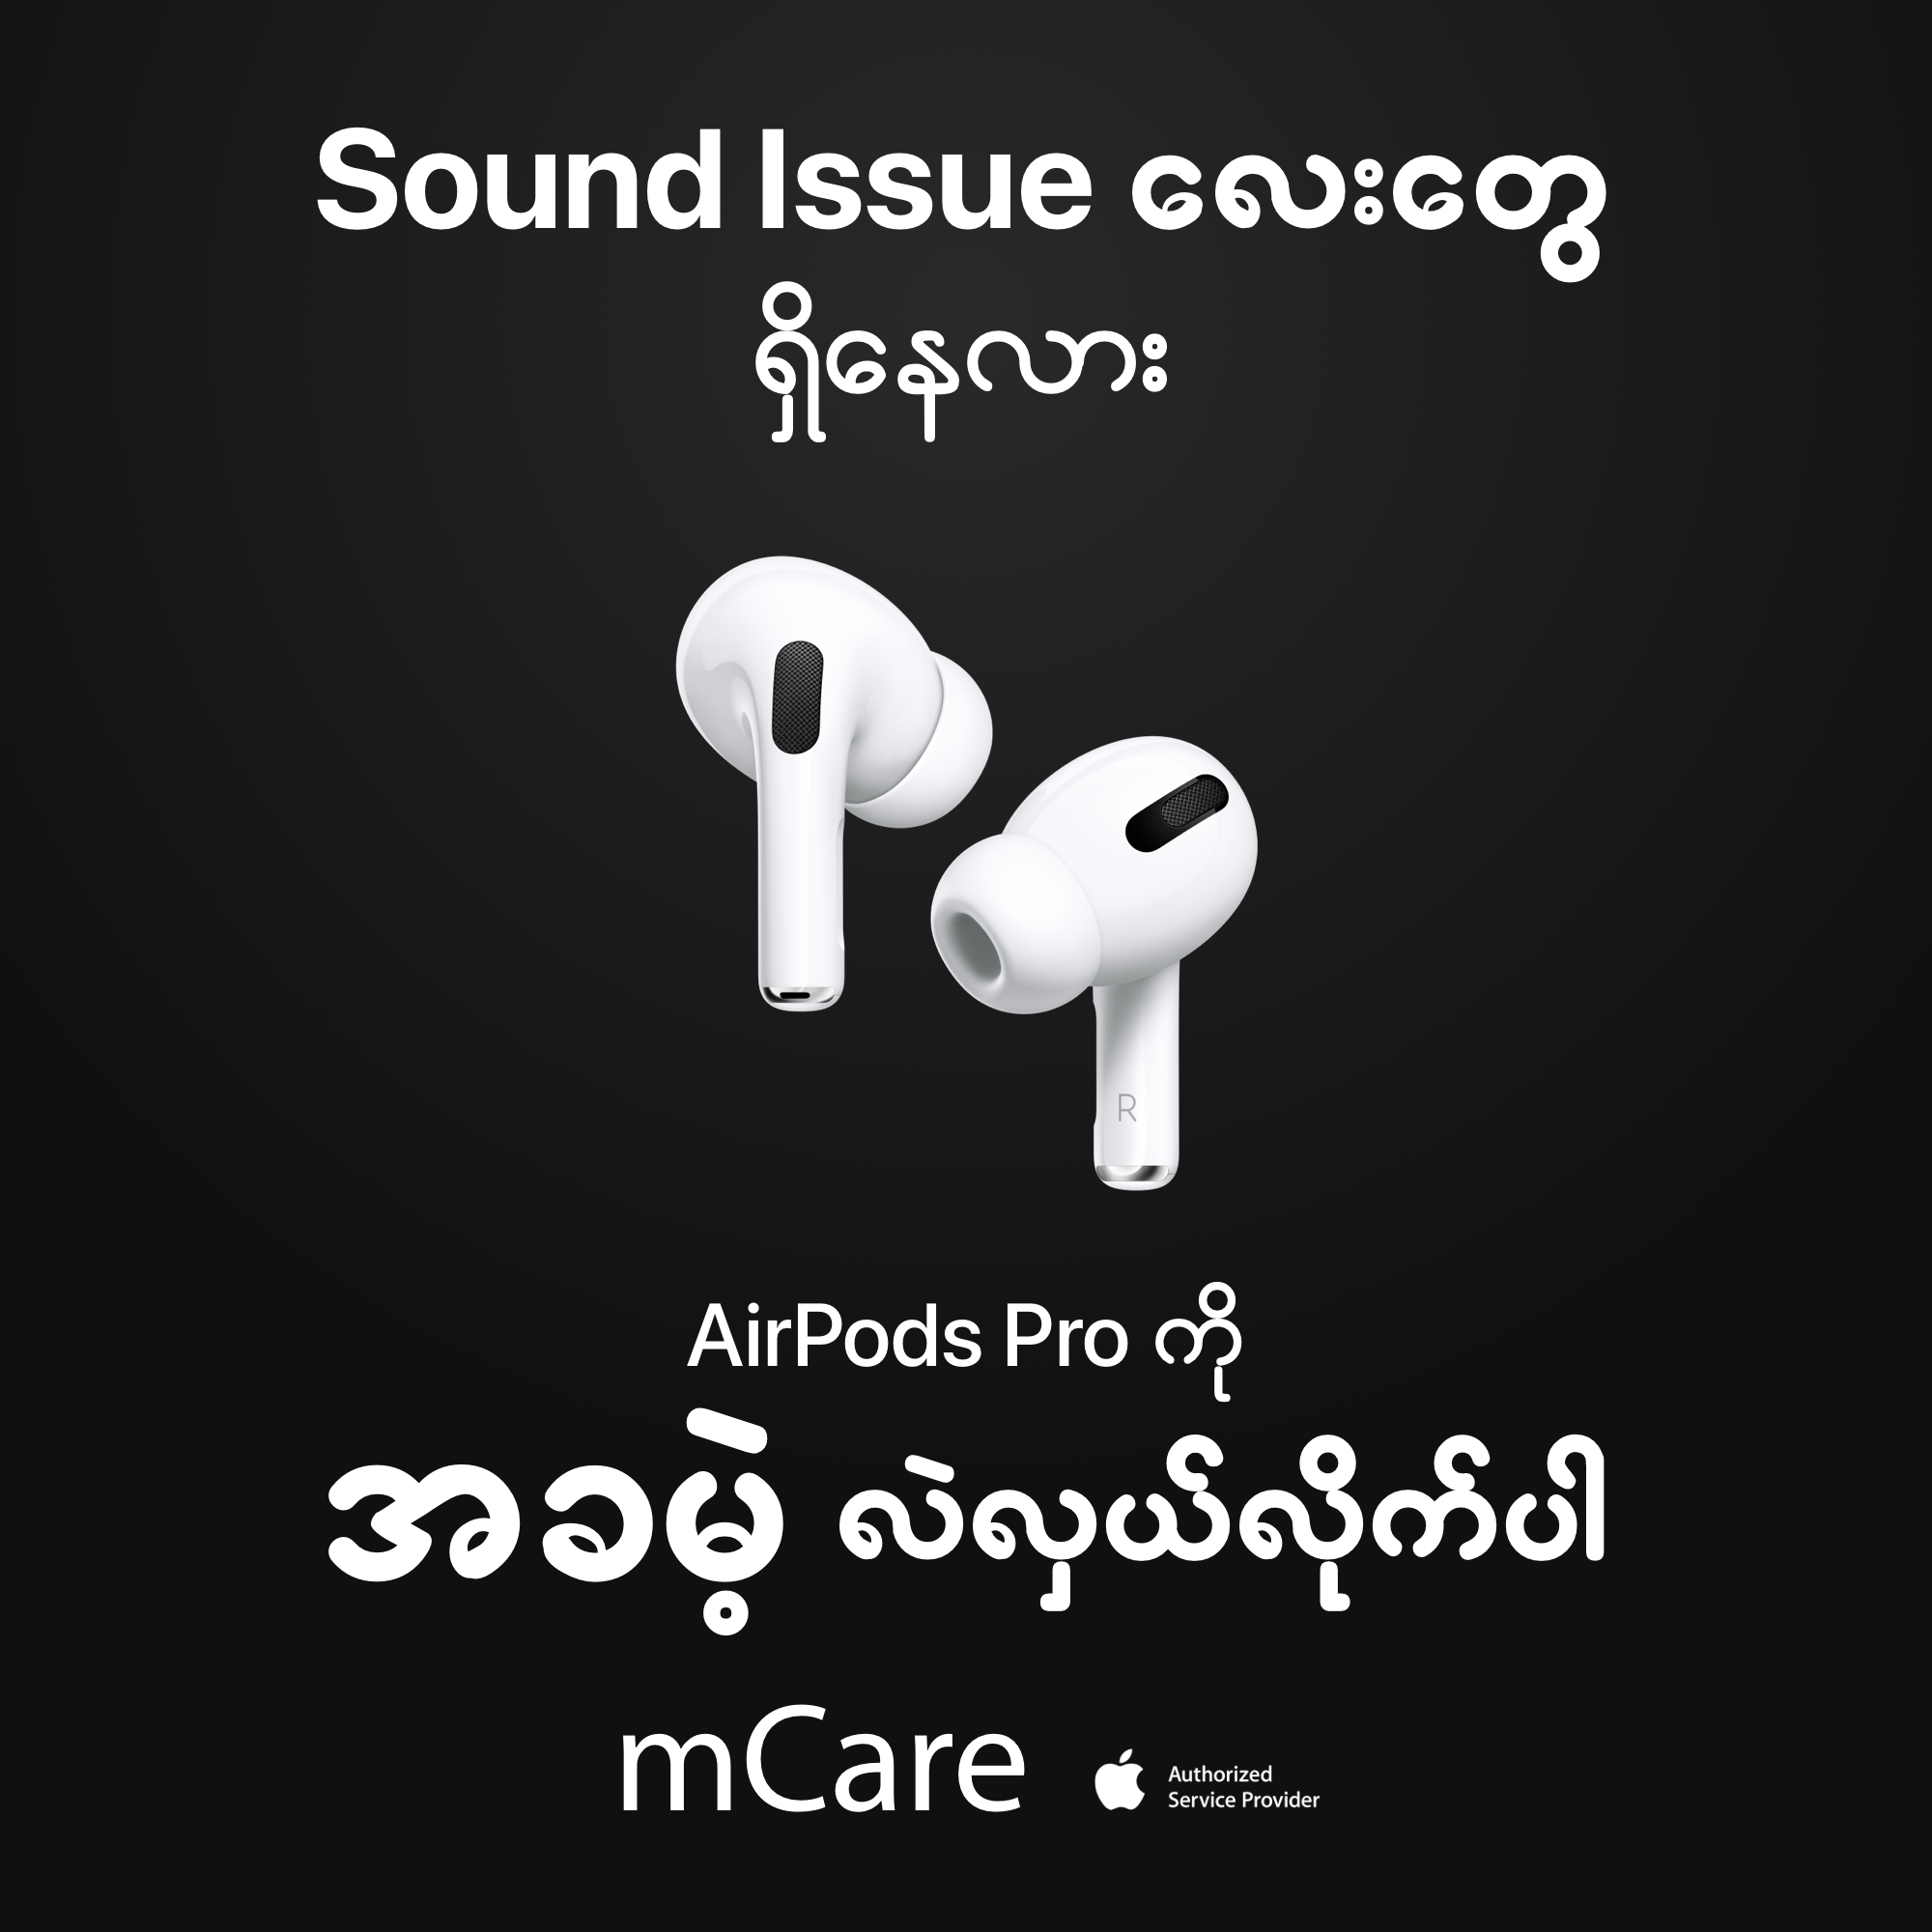 mCare AirPods Pro Sound Issue